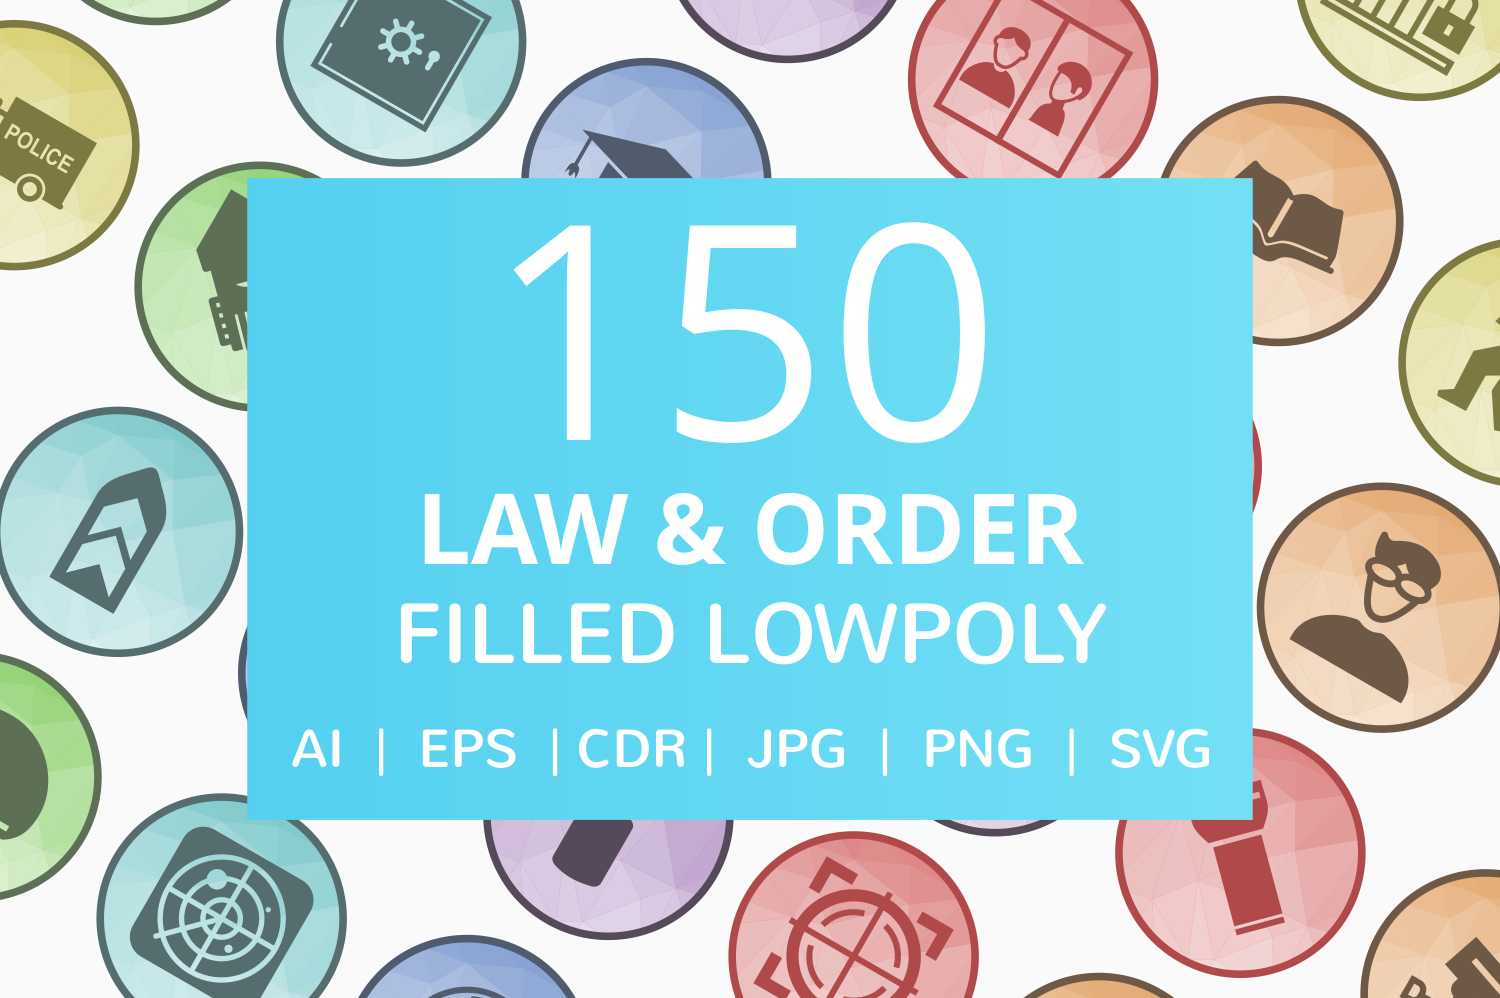 150 Law & Order Filled Low Poly Icons example image 1